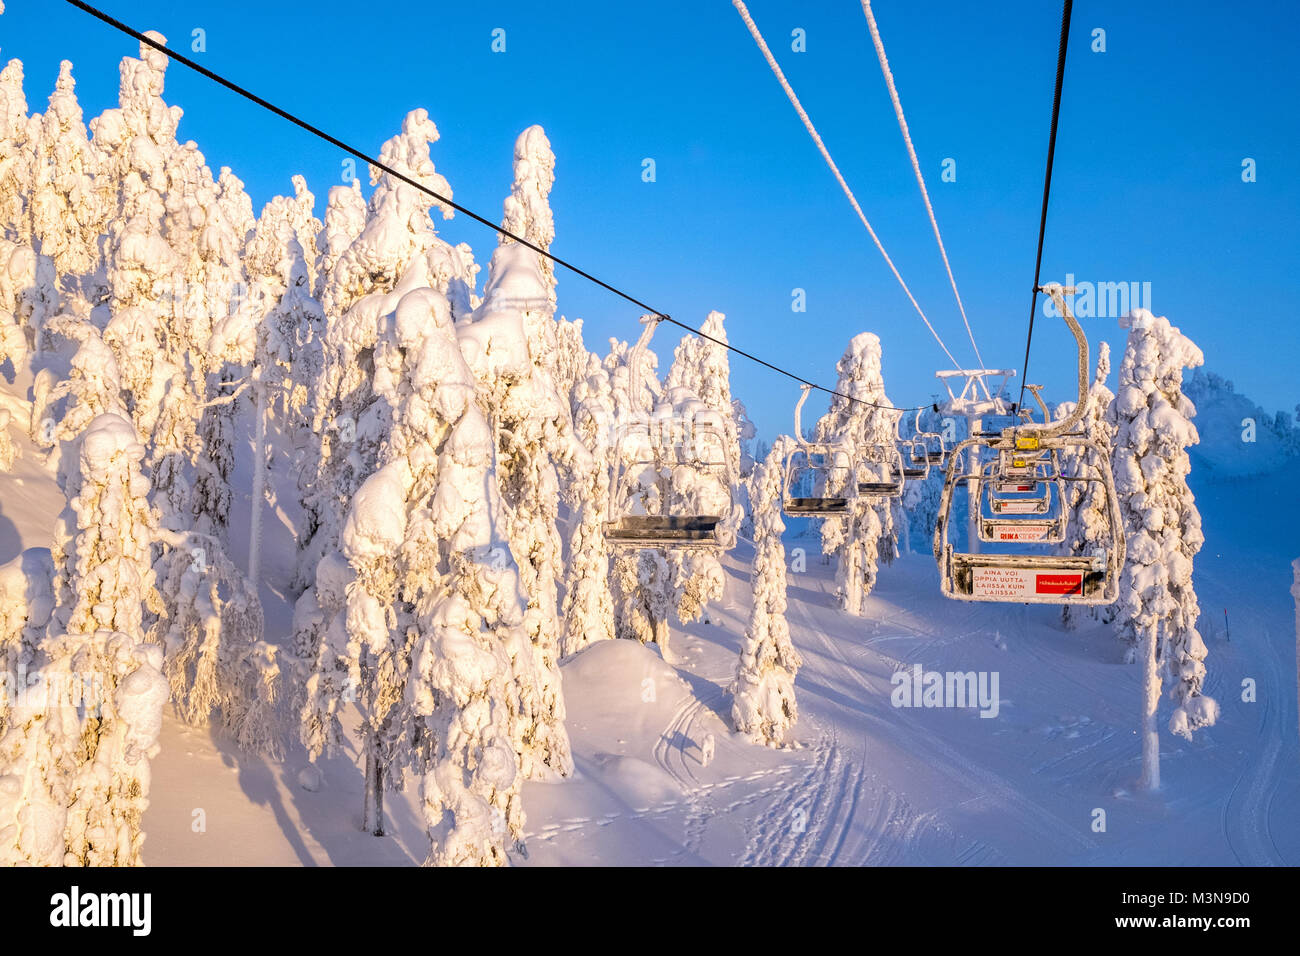 Sessellift an der Skistation von Ruka in Finnland Stockbild